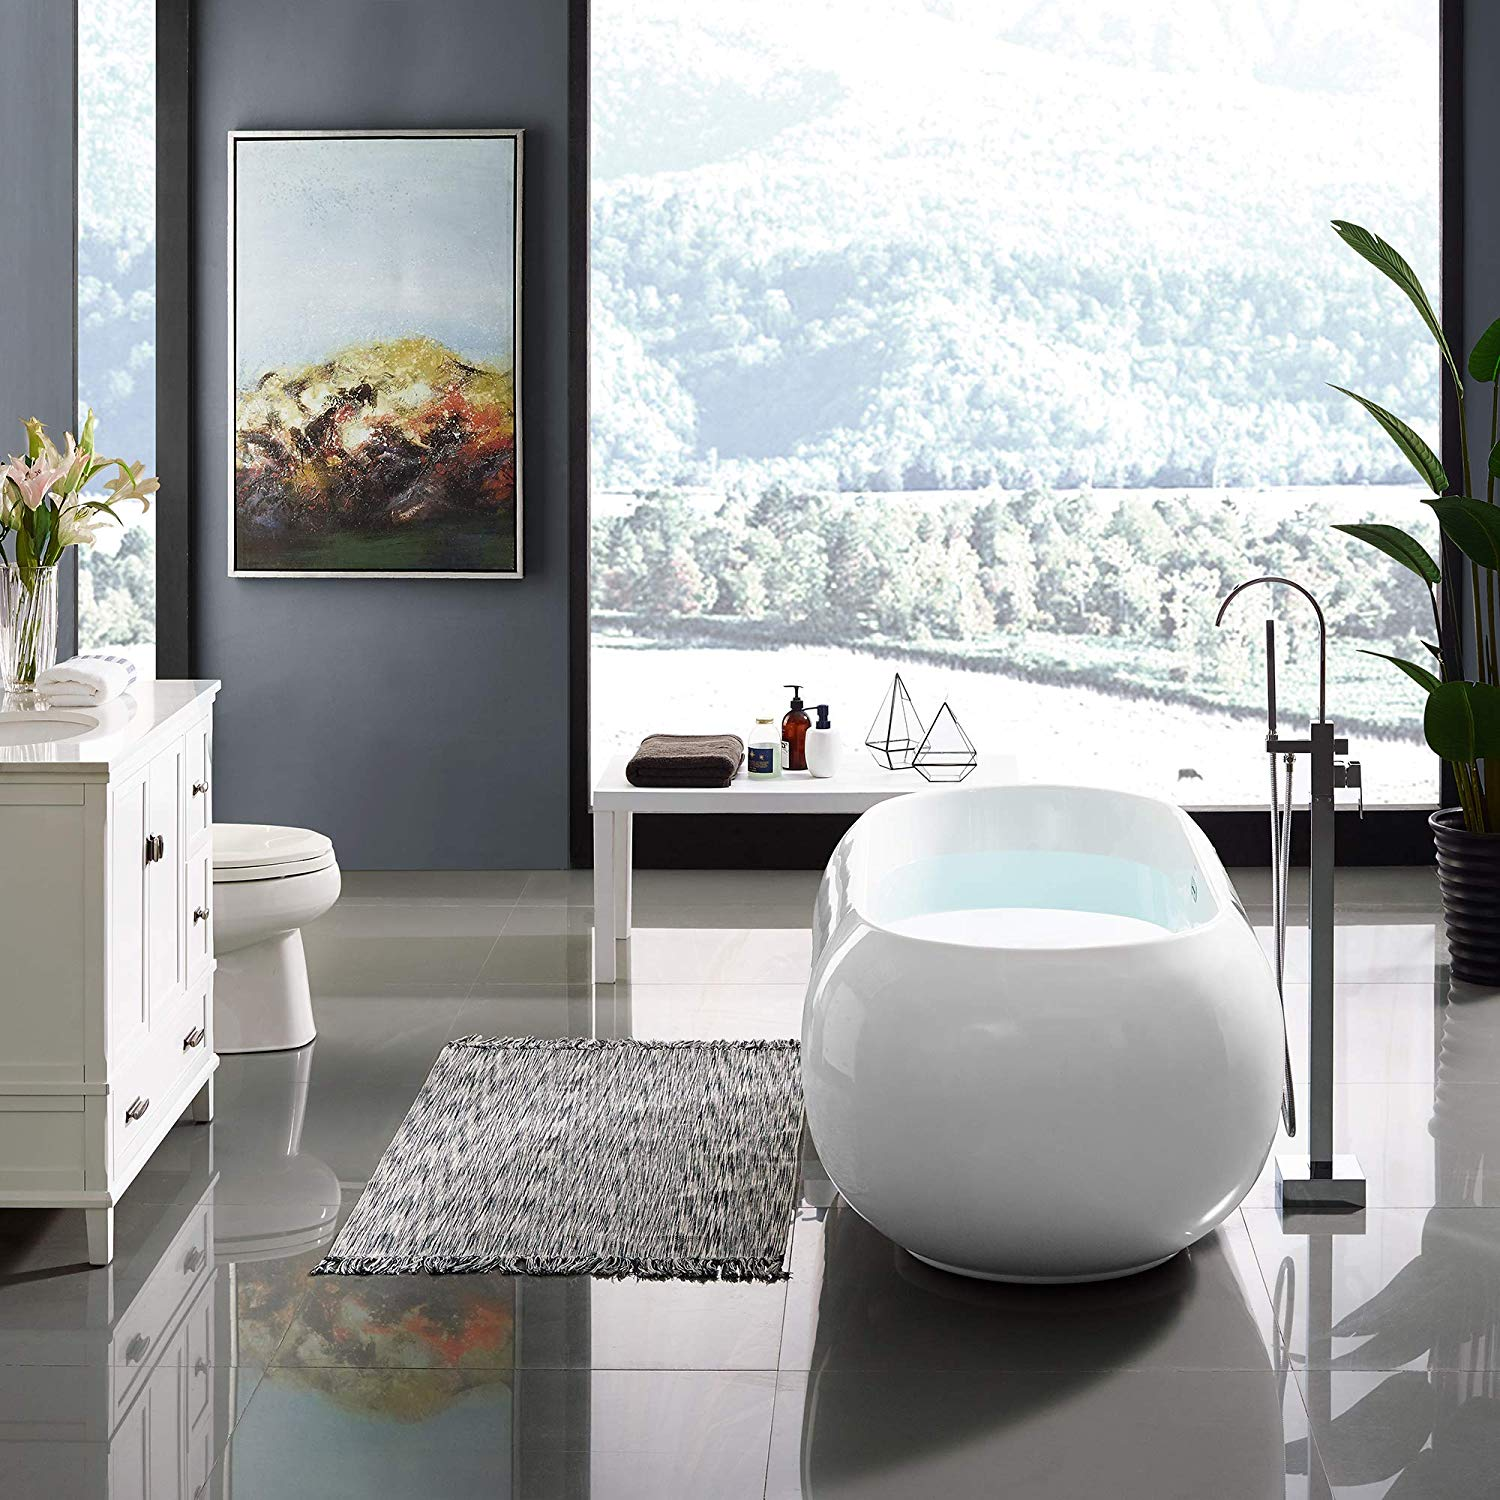 unique-free-standing-bathtub-oval-rounded-edges-fixture-for-modern-bathroom-ideas